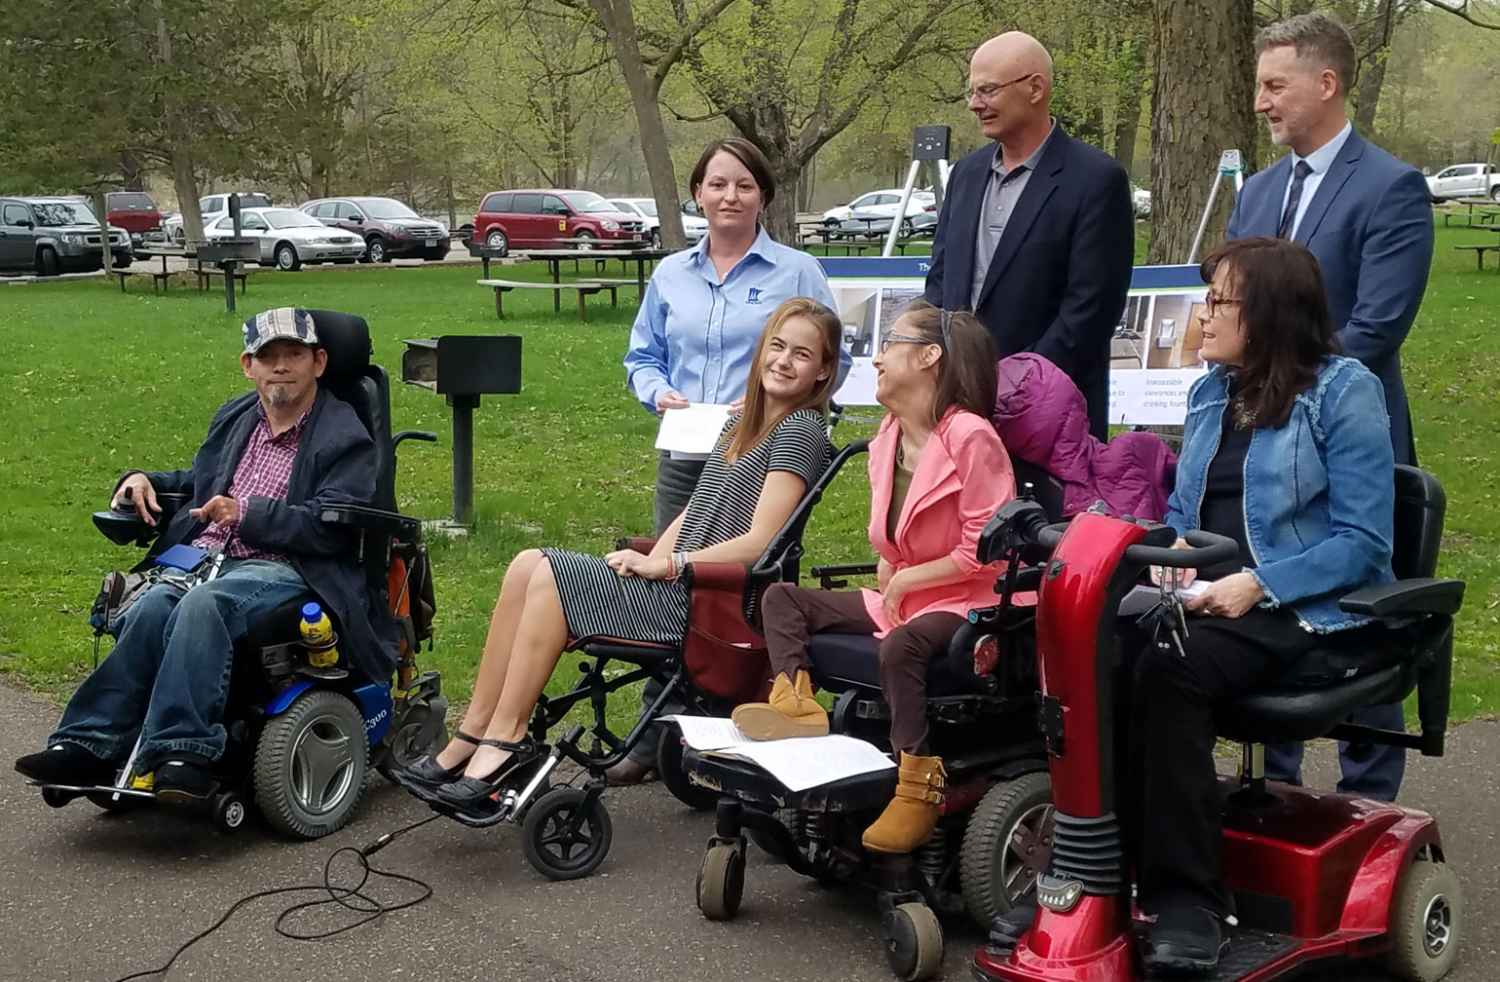 Katie Allee joined the Minnesota DNR and others to advocate for fully accessible state parks.